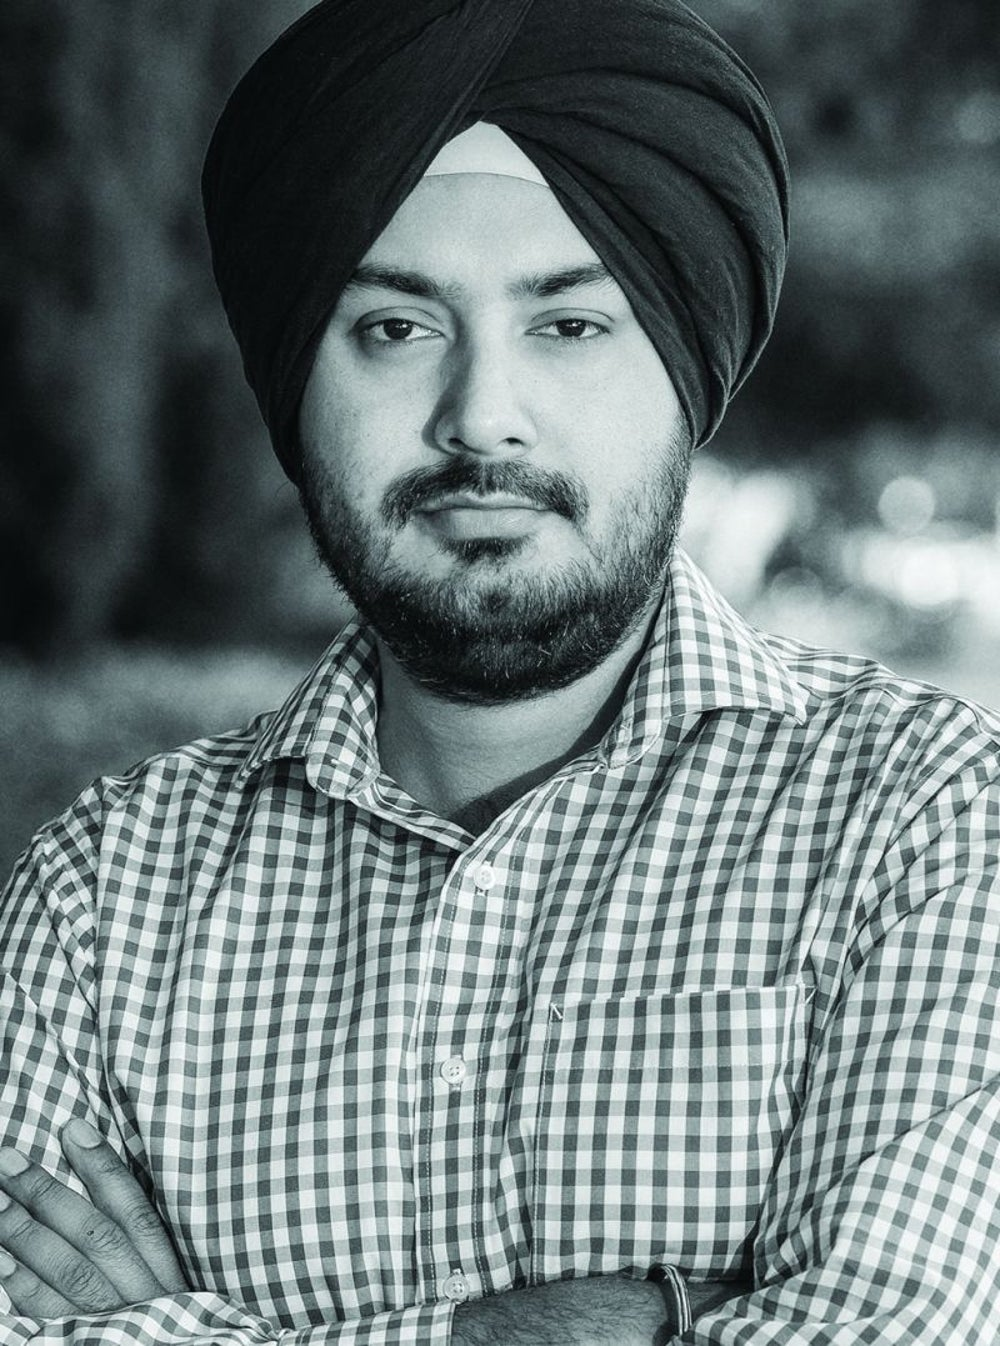 The Cyber Security Savior - Jaspreet Singh, 34, Founder And CEO, Druva